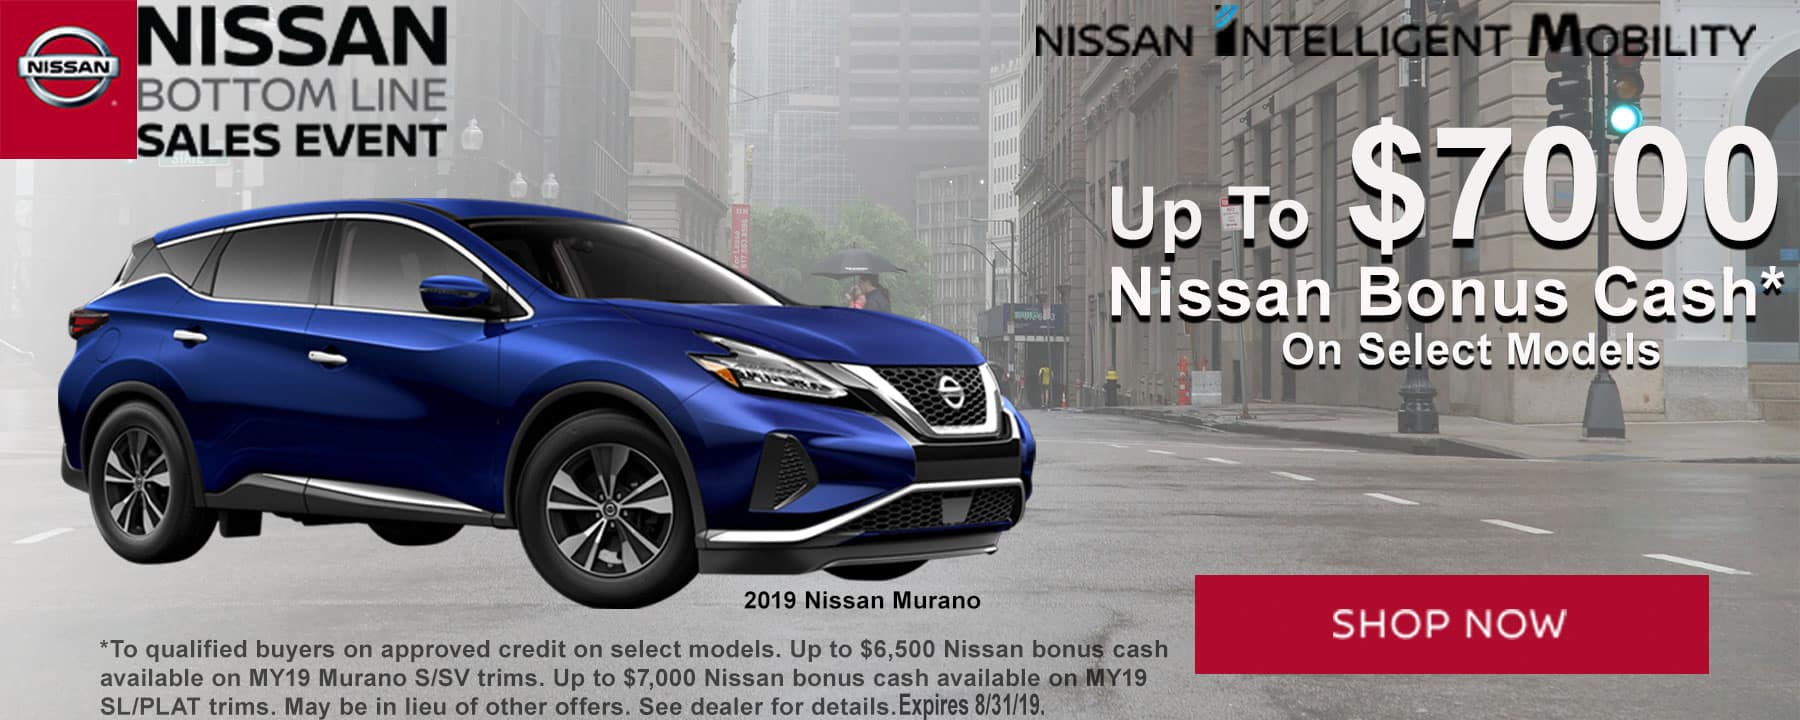 Get Up to $7,000 Nissan Bonus Cash on 2019 Nissan Murano at Berman Nissan of Chicago!